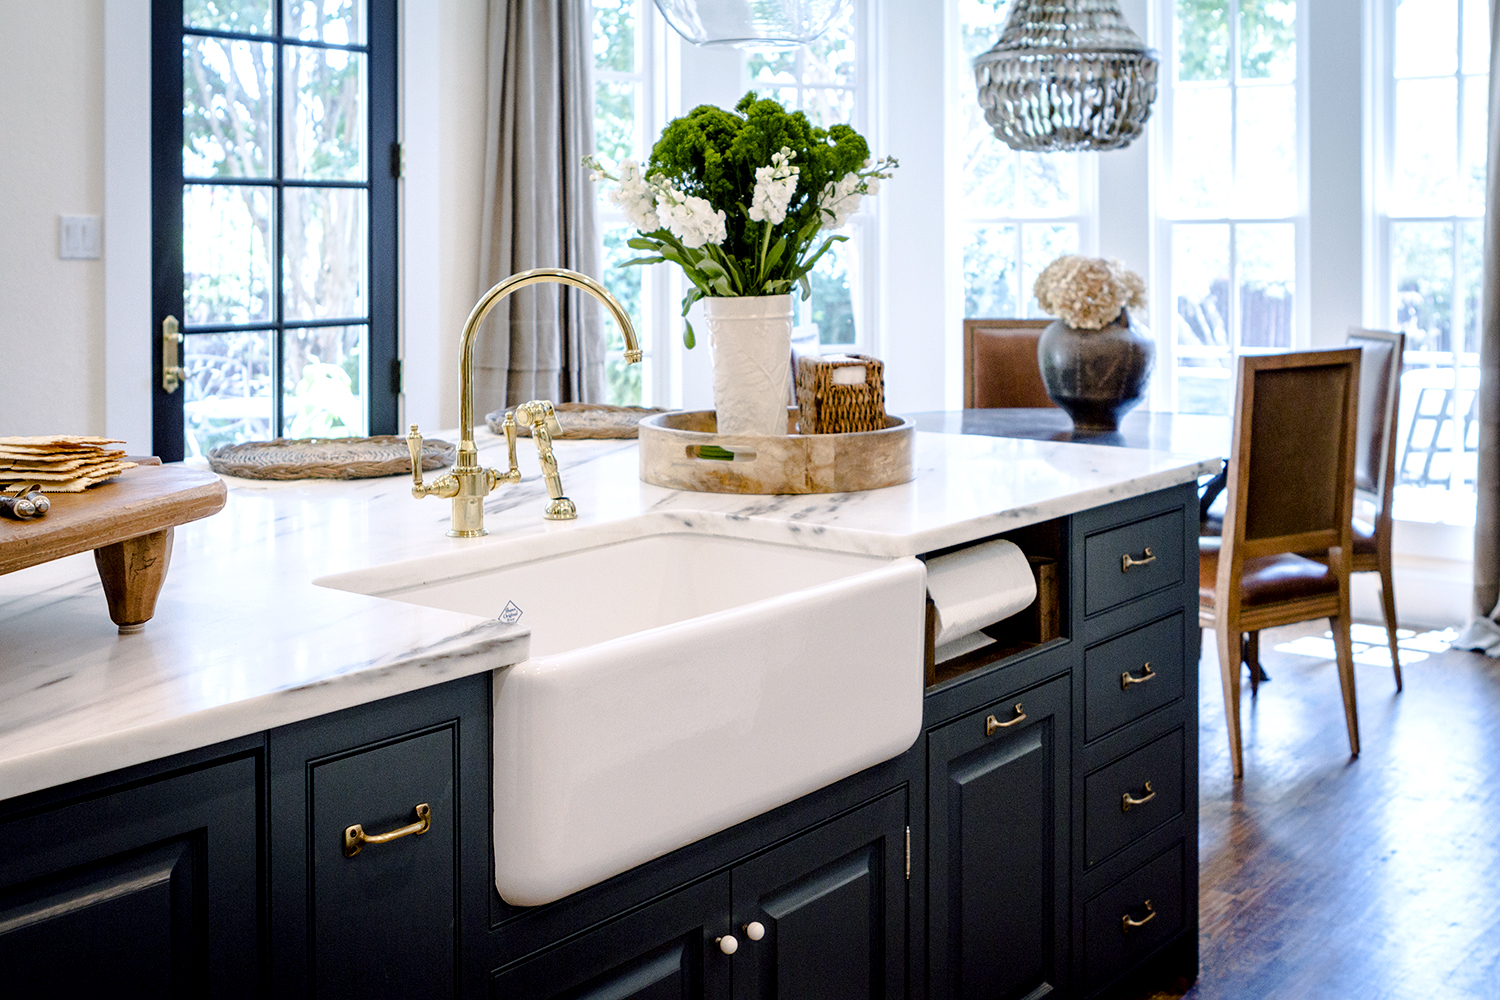 Decor Inspiration: A Go-To Kitchen - The Simply Luxurious ... on Rustic:fkvt0Ptafus= Farmhouse Kitchen  id=63922